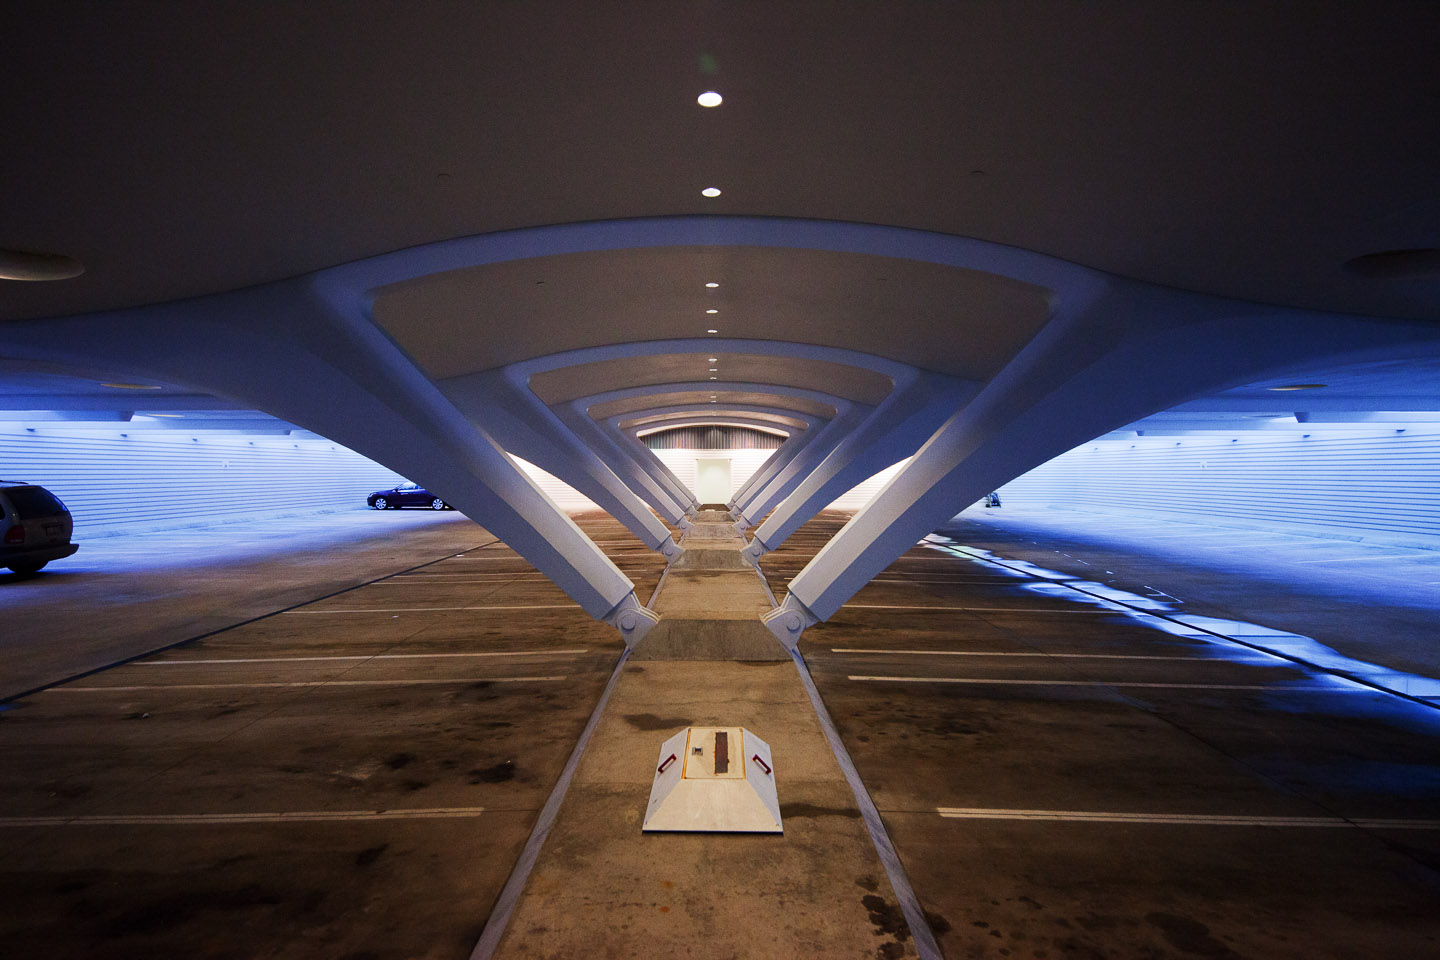 the underground parking structure of the Milwaukee Art Museum, designed by Santiago Calatrava, photographed by Jacob Rosenfeld